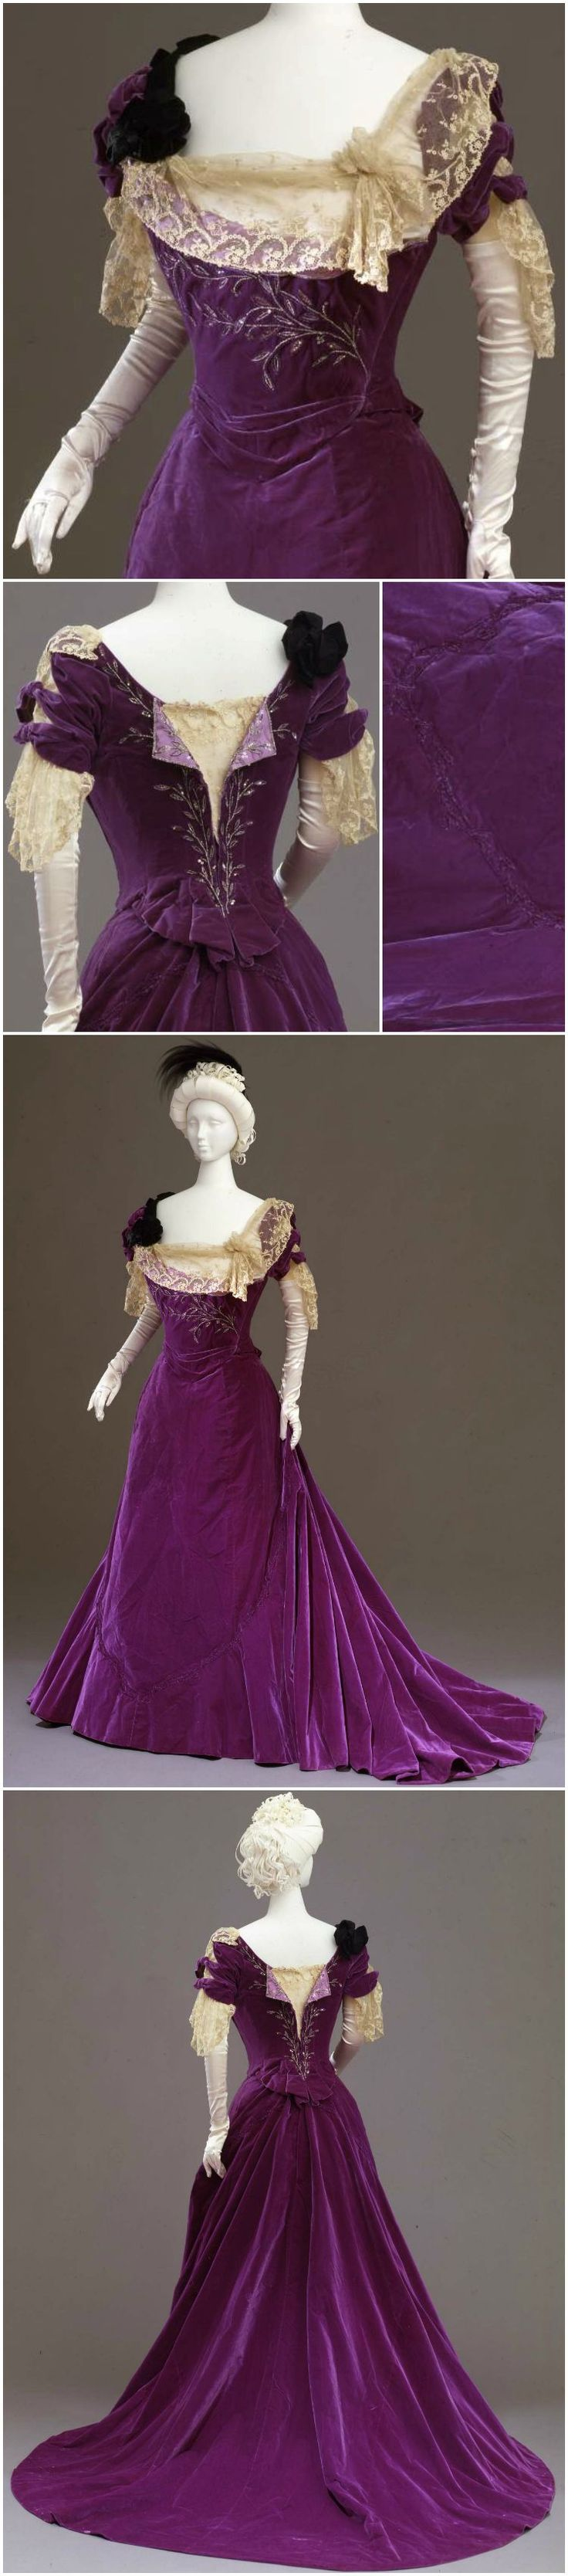 Getting the right drape in the train is a real art; learn how in Costume Design and Making: VFC090C  Purple velvet dress in two parts (bodice and skirt), by Atelier Worth, Paris, circa 1901.